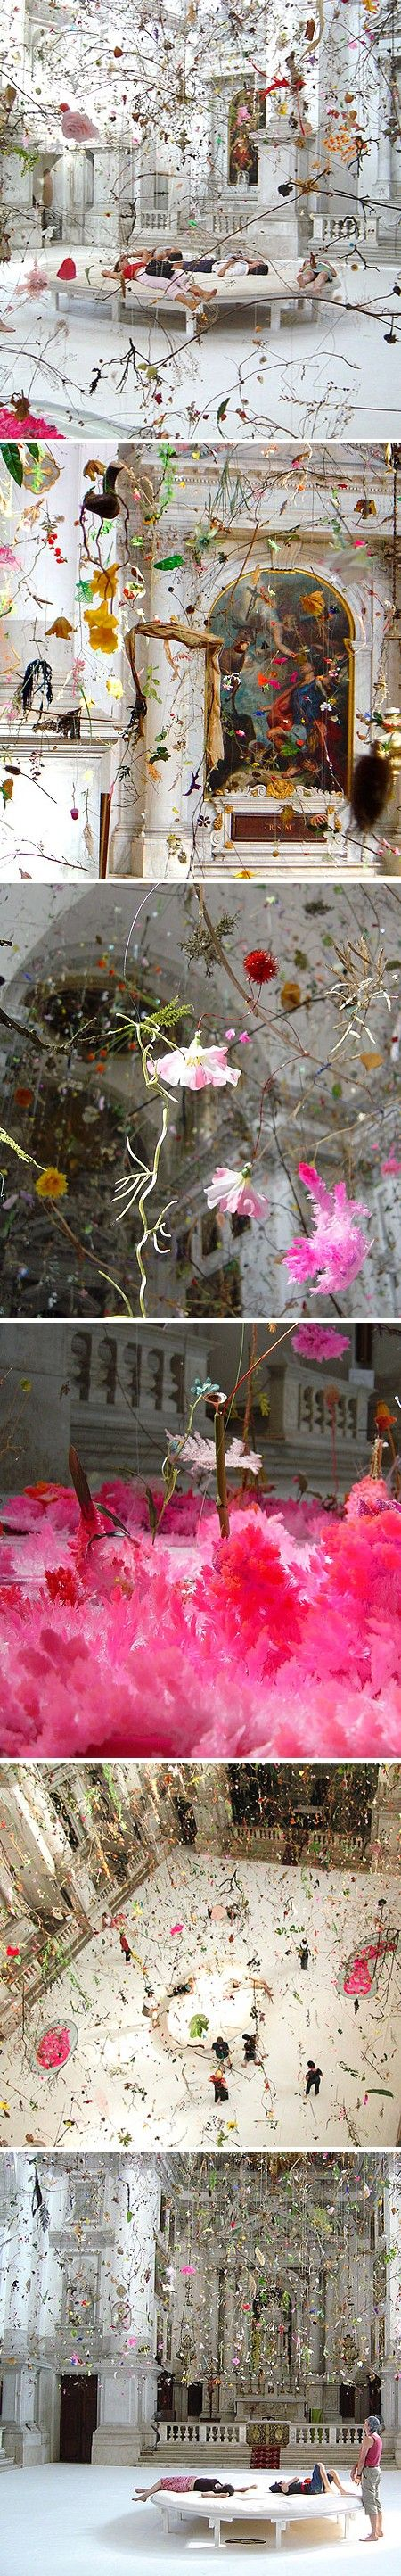 Falling Garden, and is the work of collaborating Swiss artists, Gerda Steiner and Jörg Lenzlinger: Supermooi!!